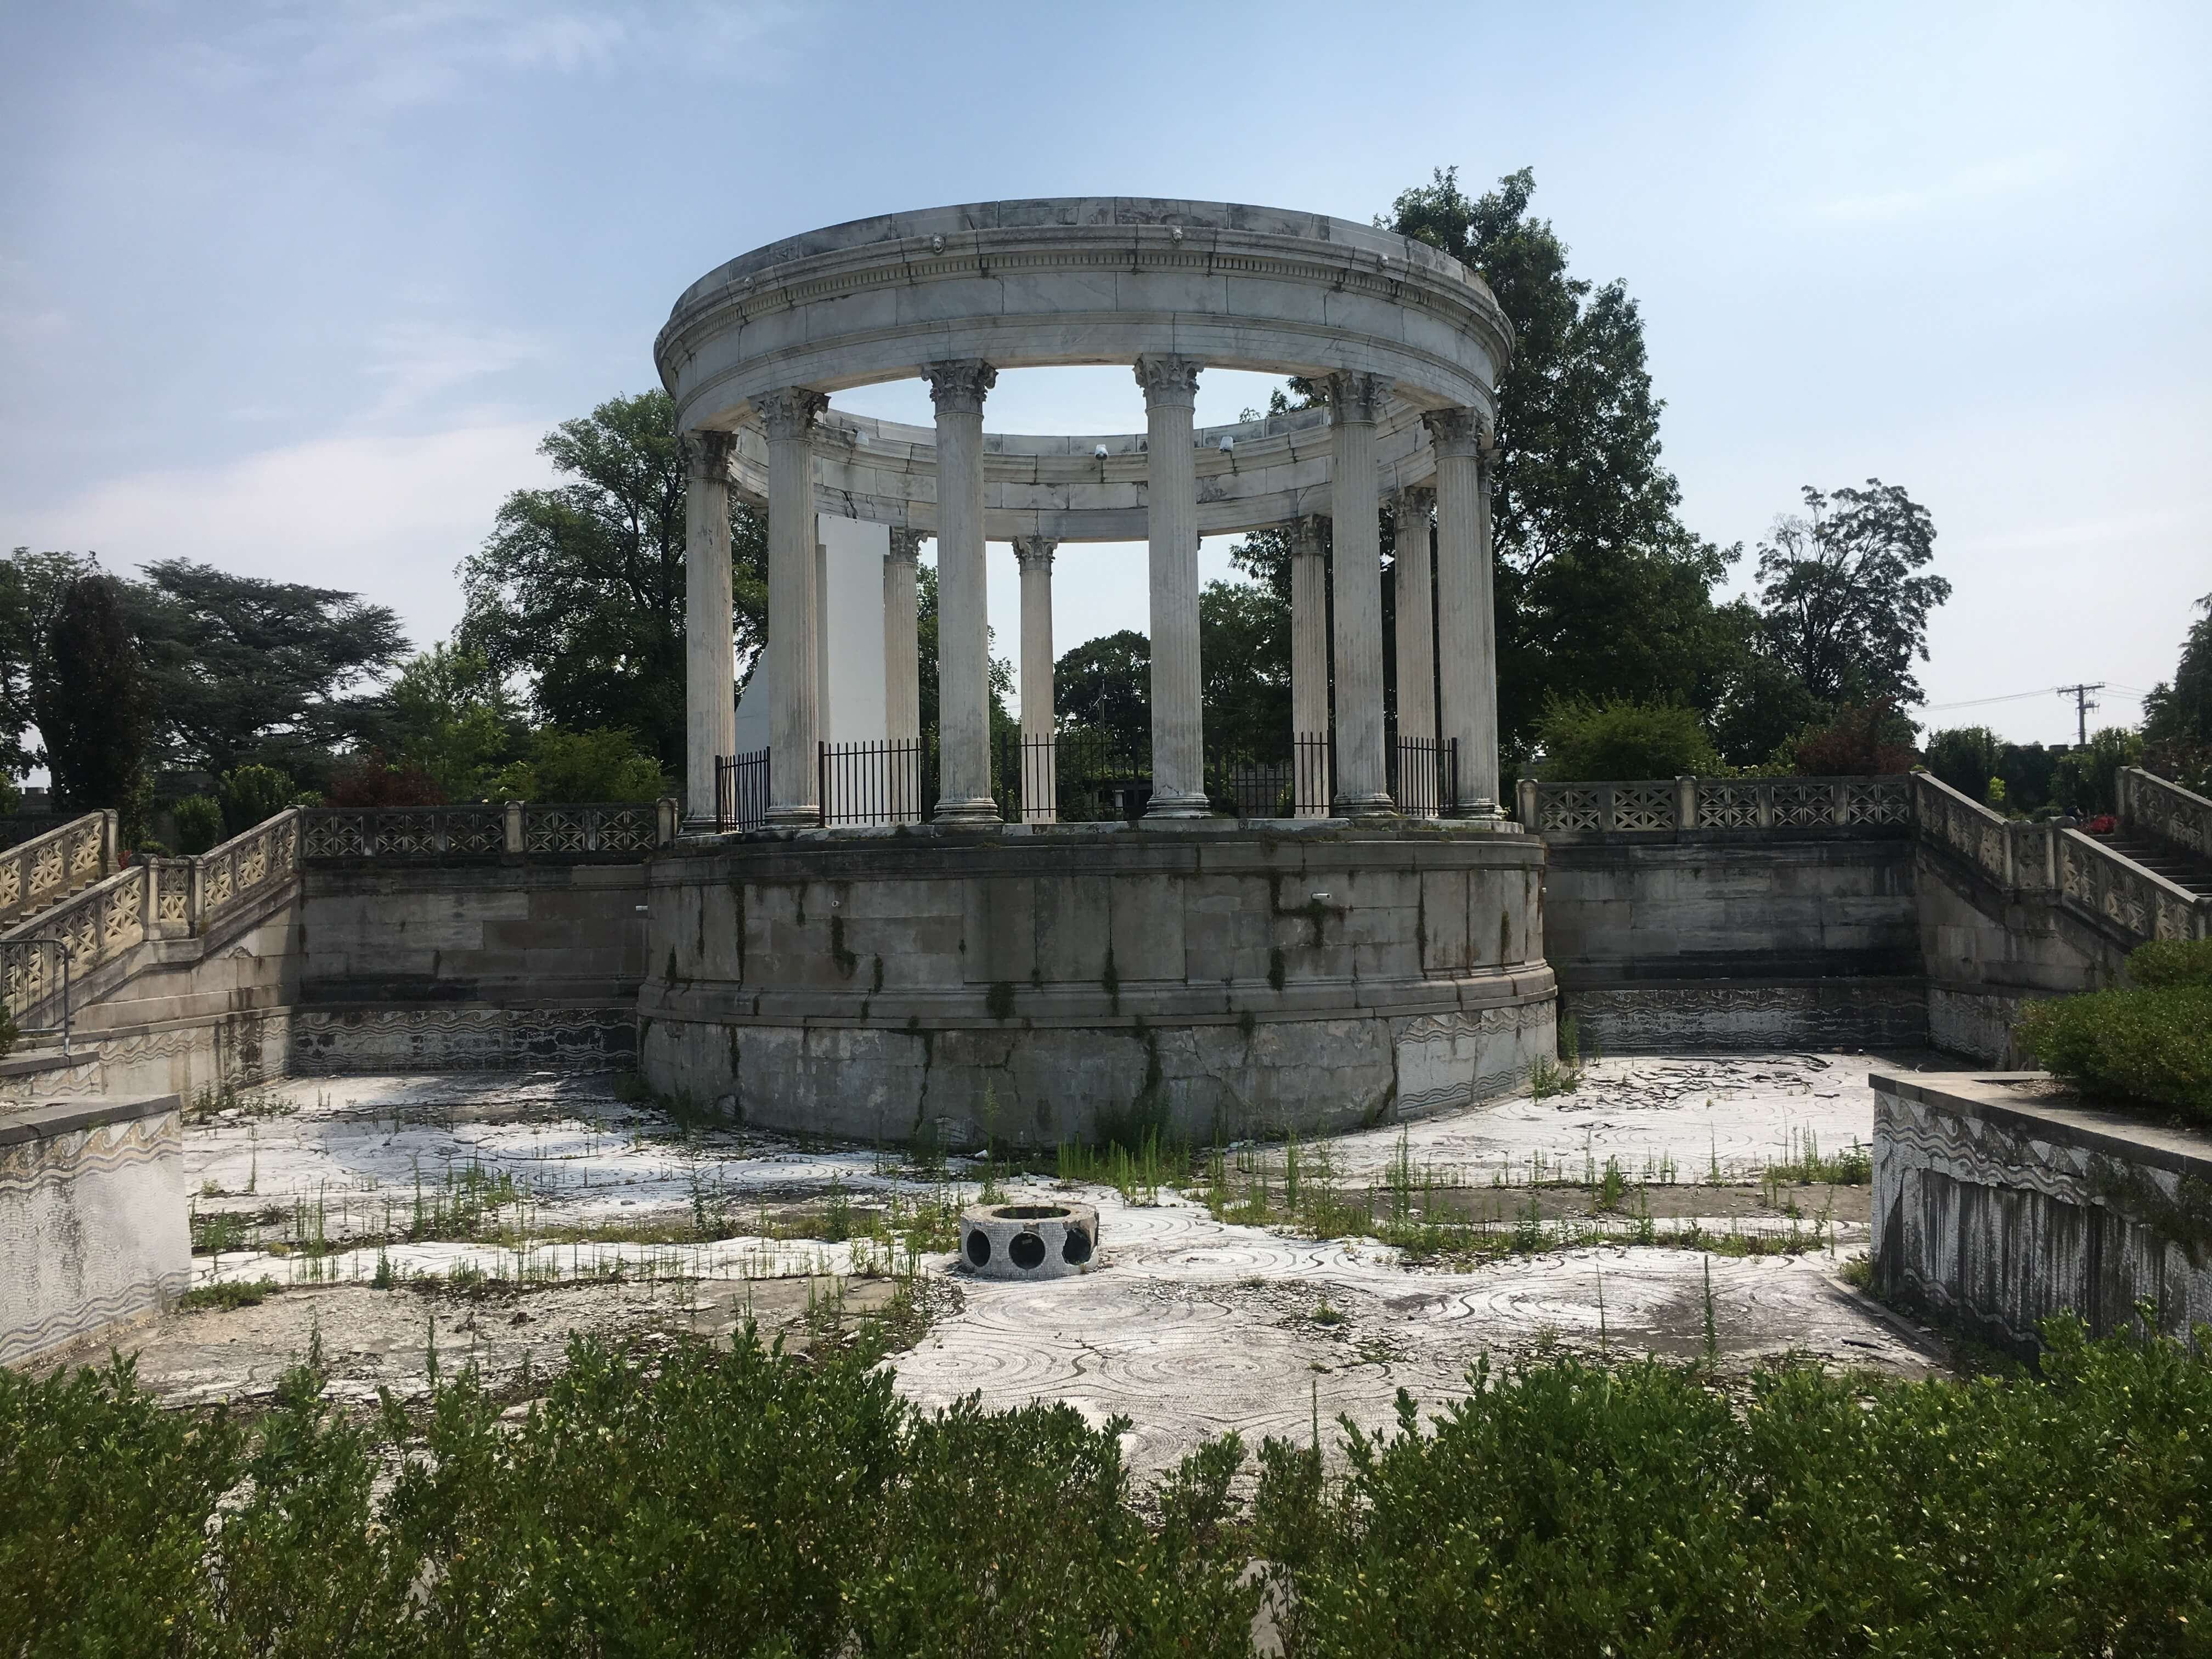 Day Trip to the Untermyer Gardens Conservatory pool